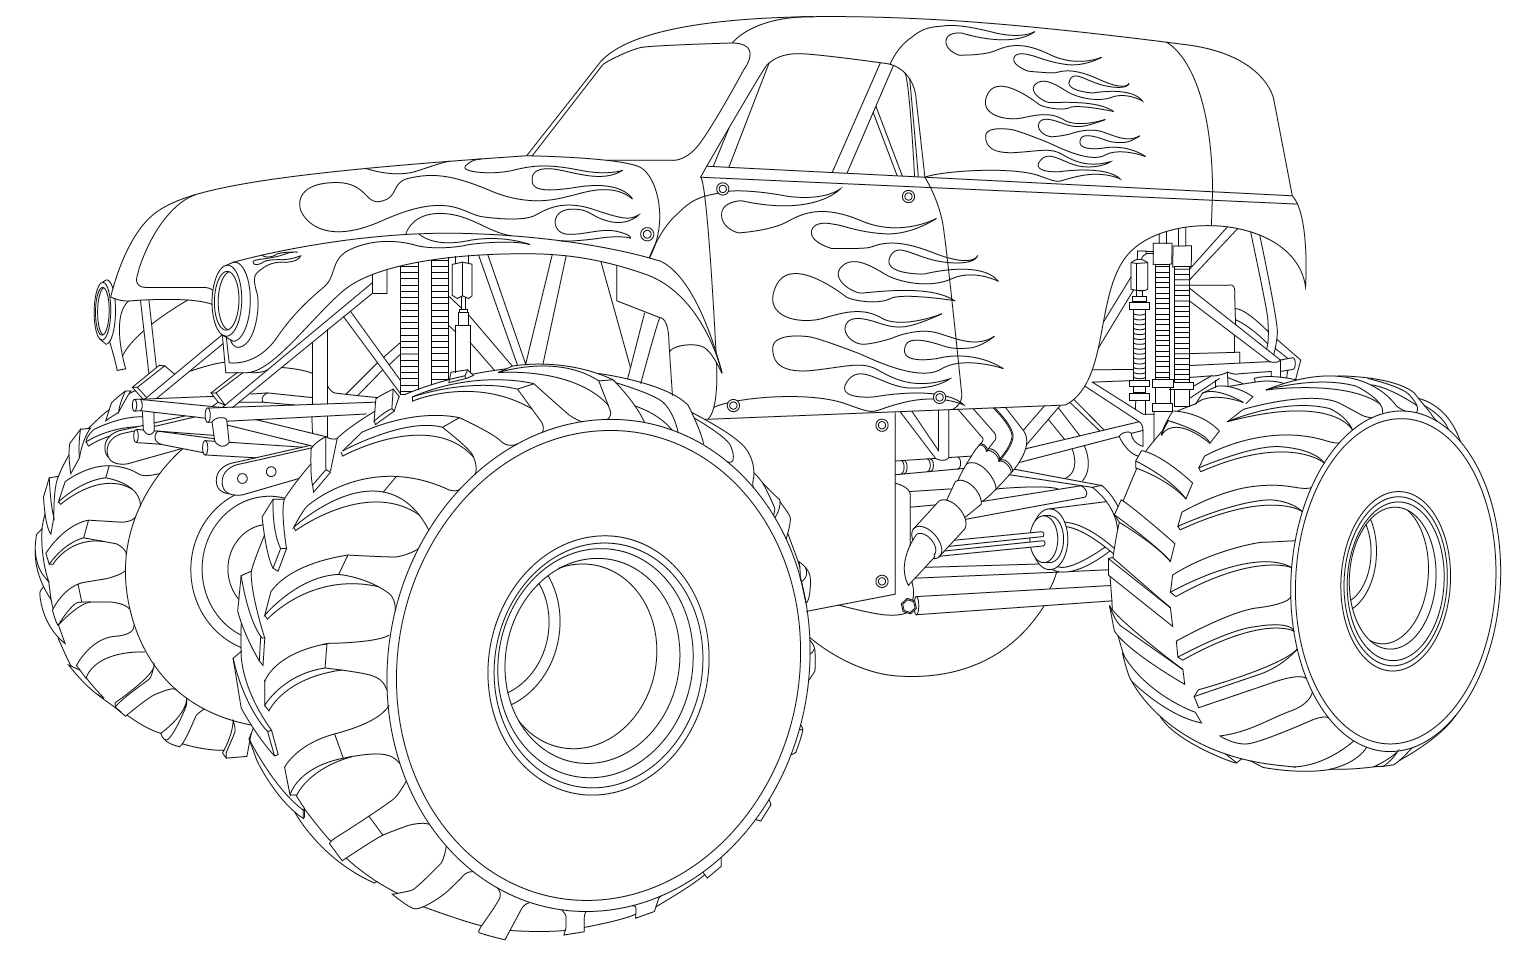 Printables Monster Truck Coloring Pages Coloringz Com Monster Truck Coloring Pages Truck Coloring Pages Coloring Pages